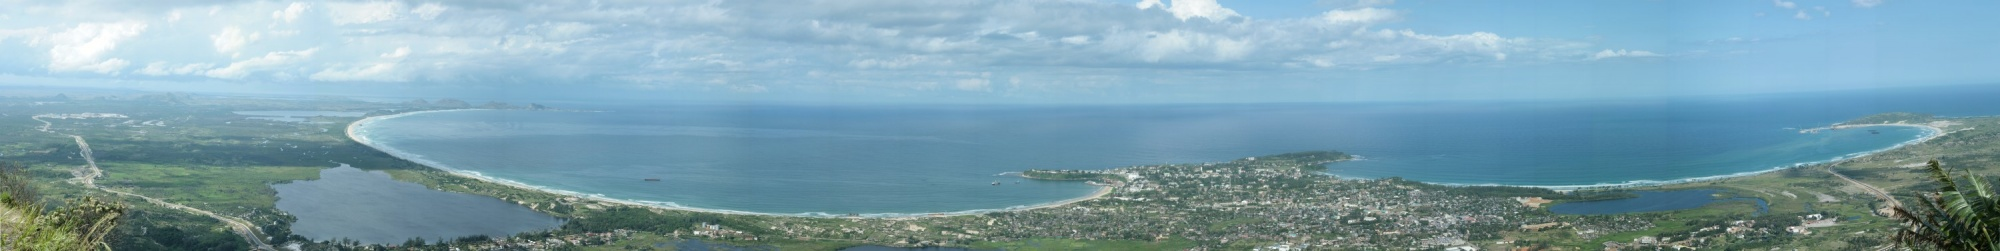 Fort Dauphin panorama.